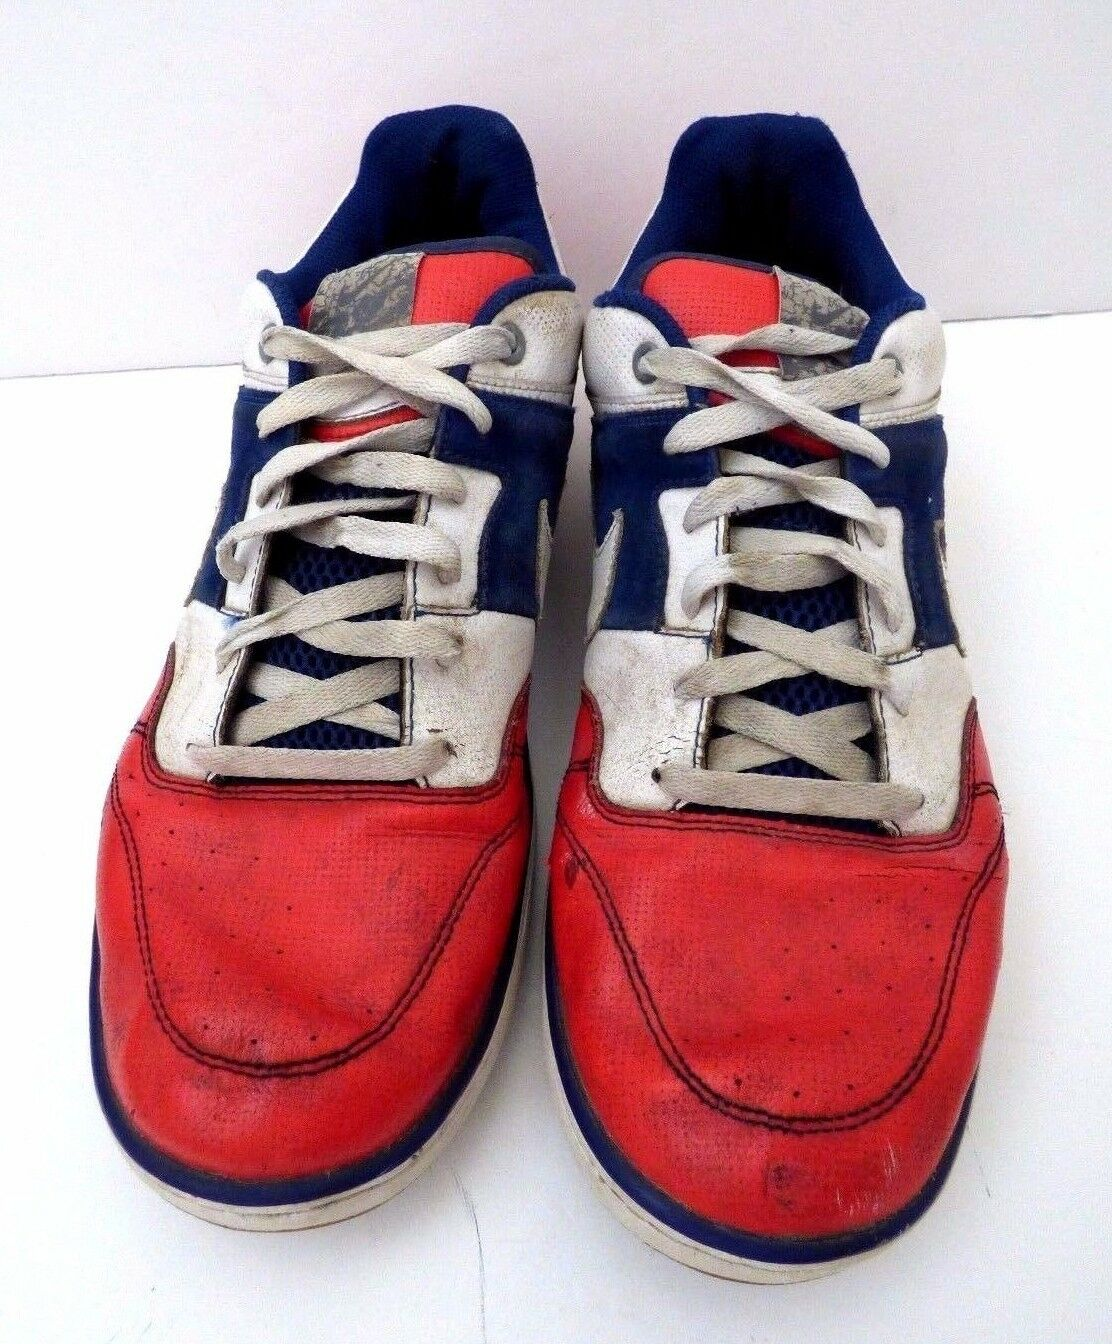 Rare Nike Air Zoom Skater Shoes US  Red White Blue / Style 383433-991 US Shoes 14 36a784